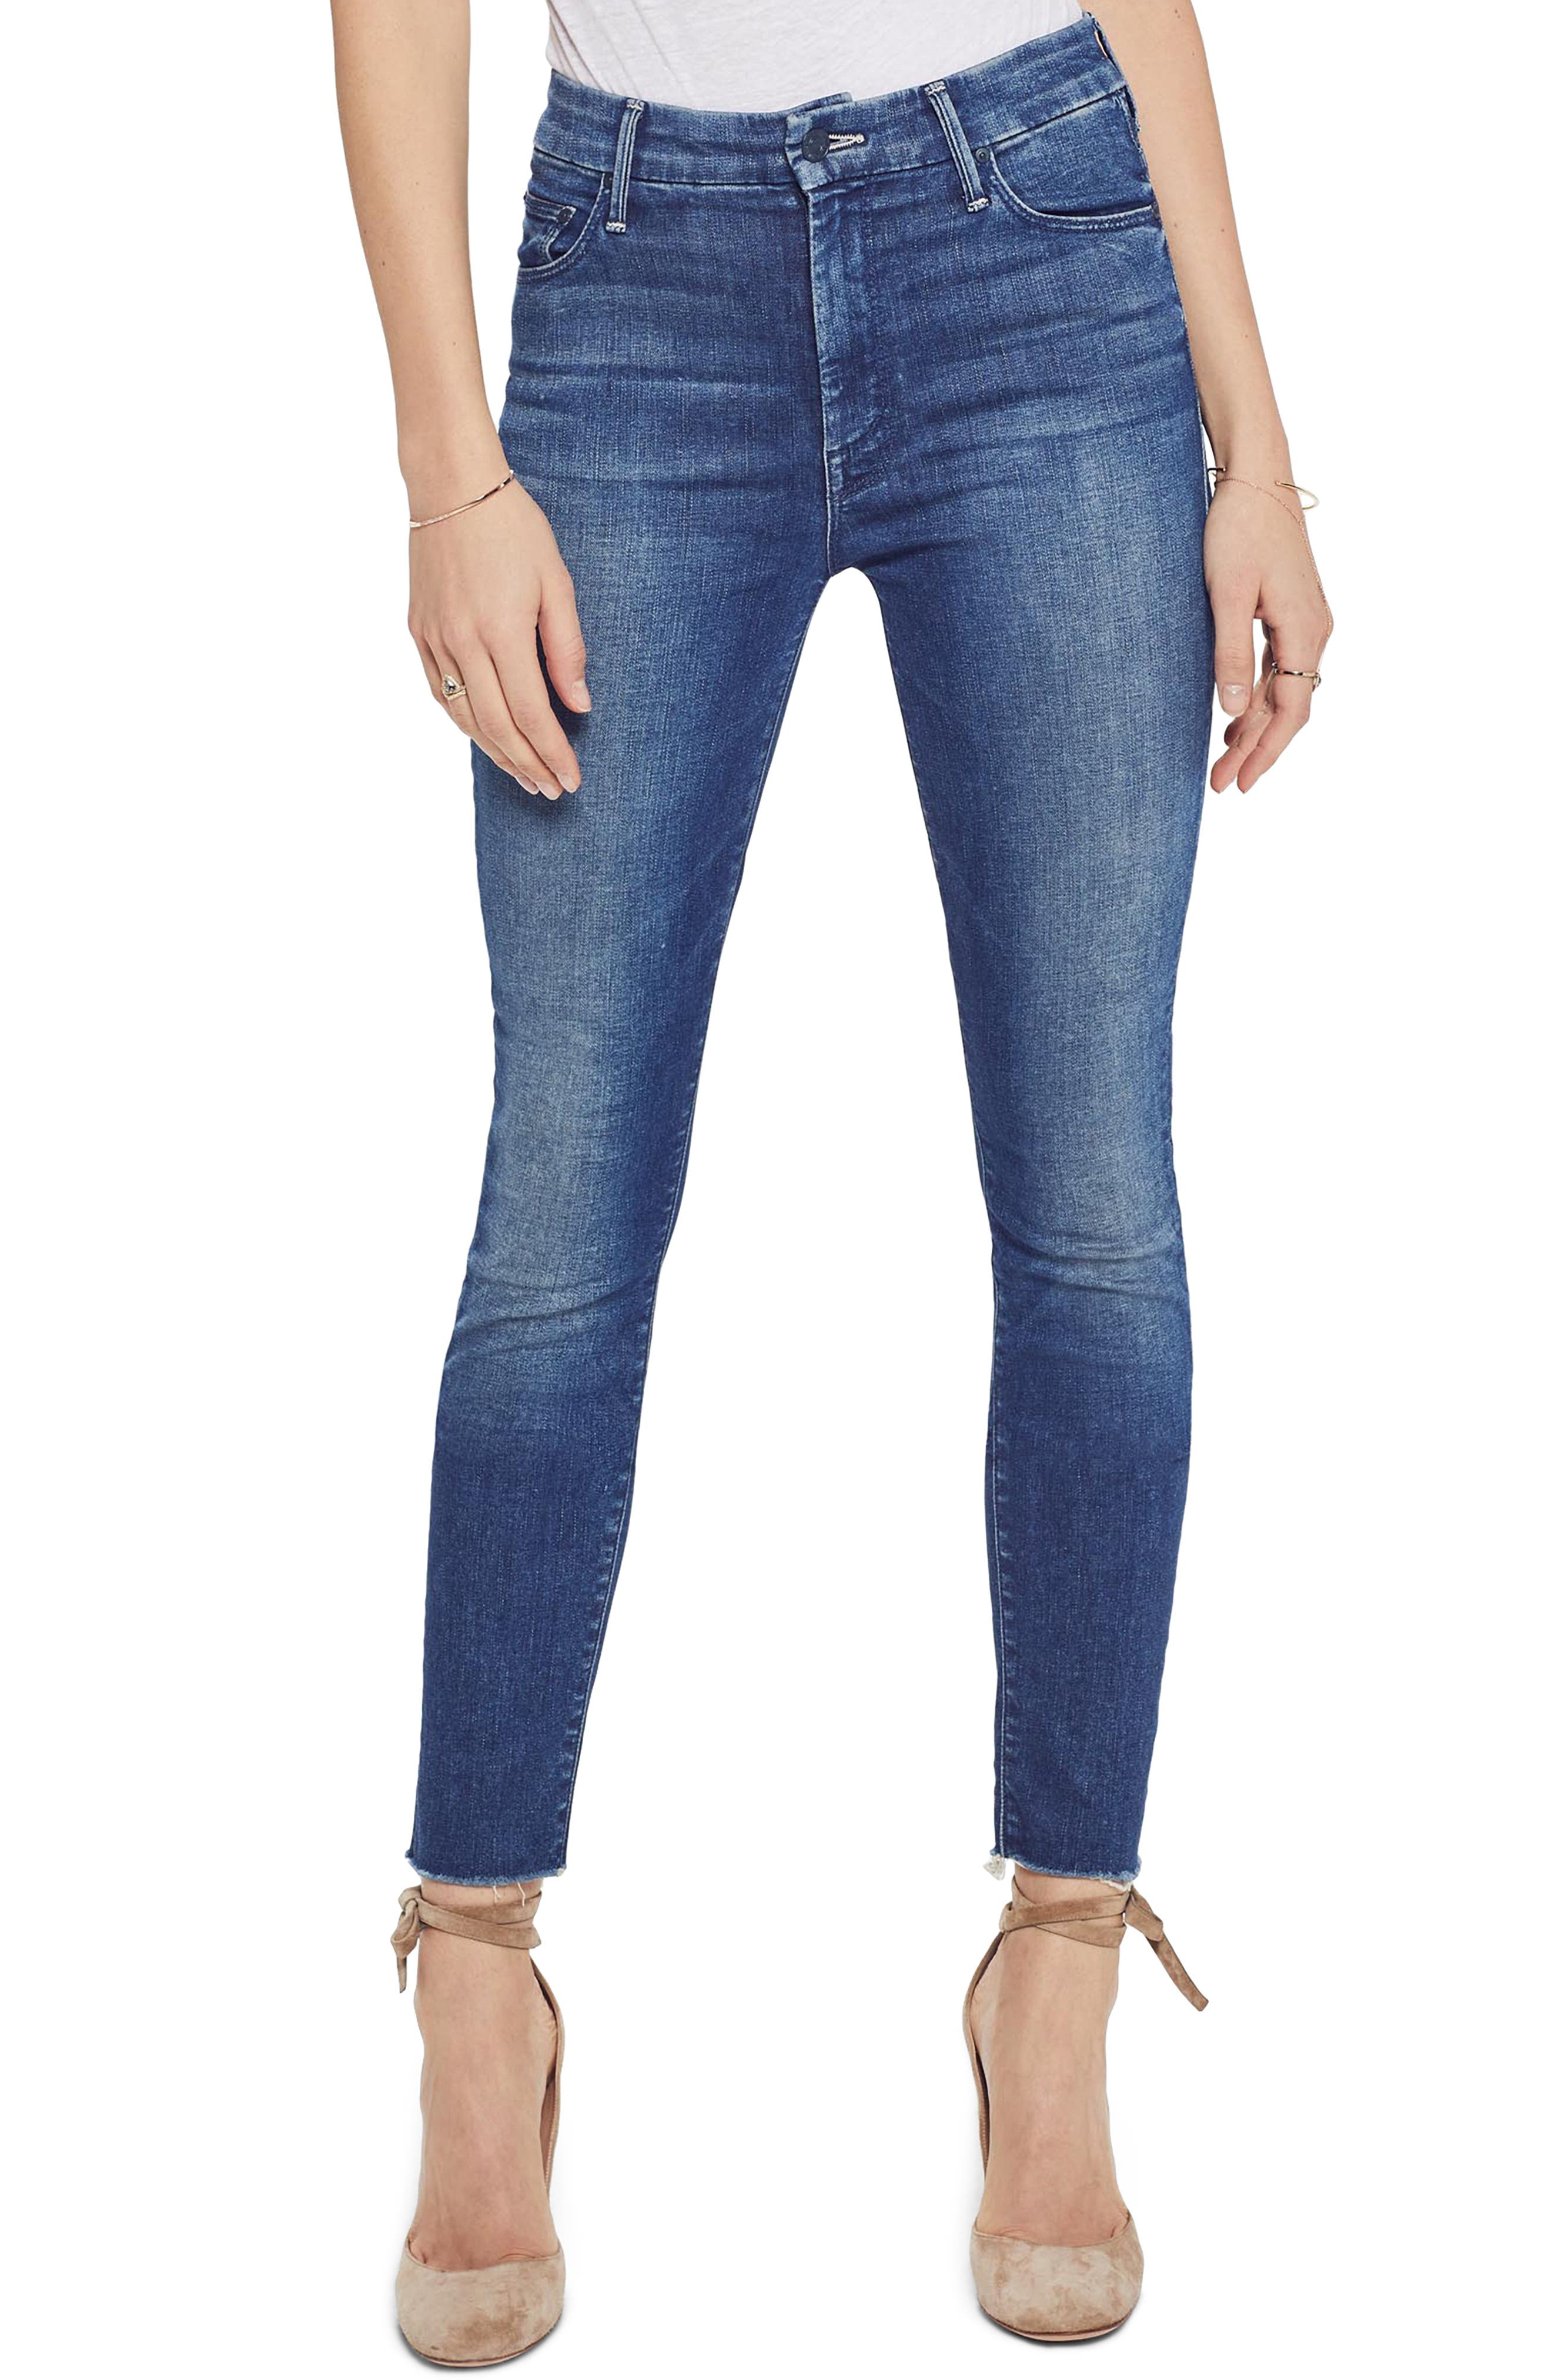 MOTHER, The Looker High Waist Frayed Ankle Skinny Jeans, Main thumbnail 1, color, LURE ME IN